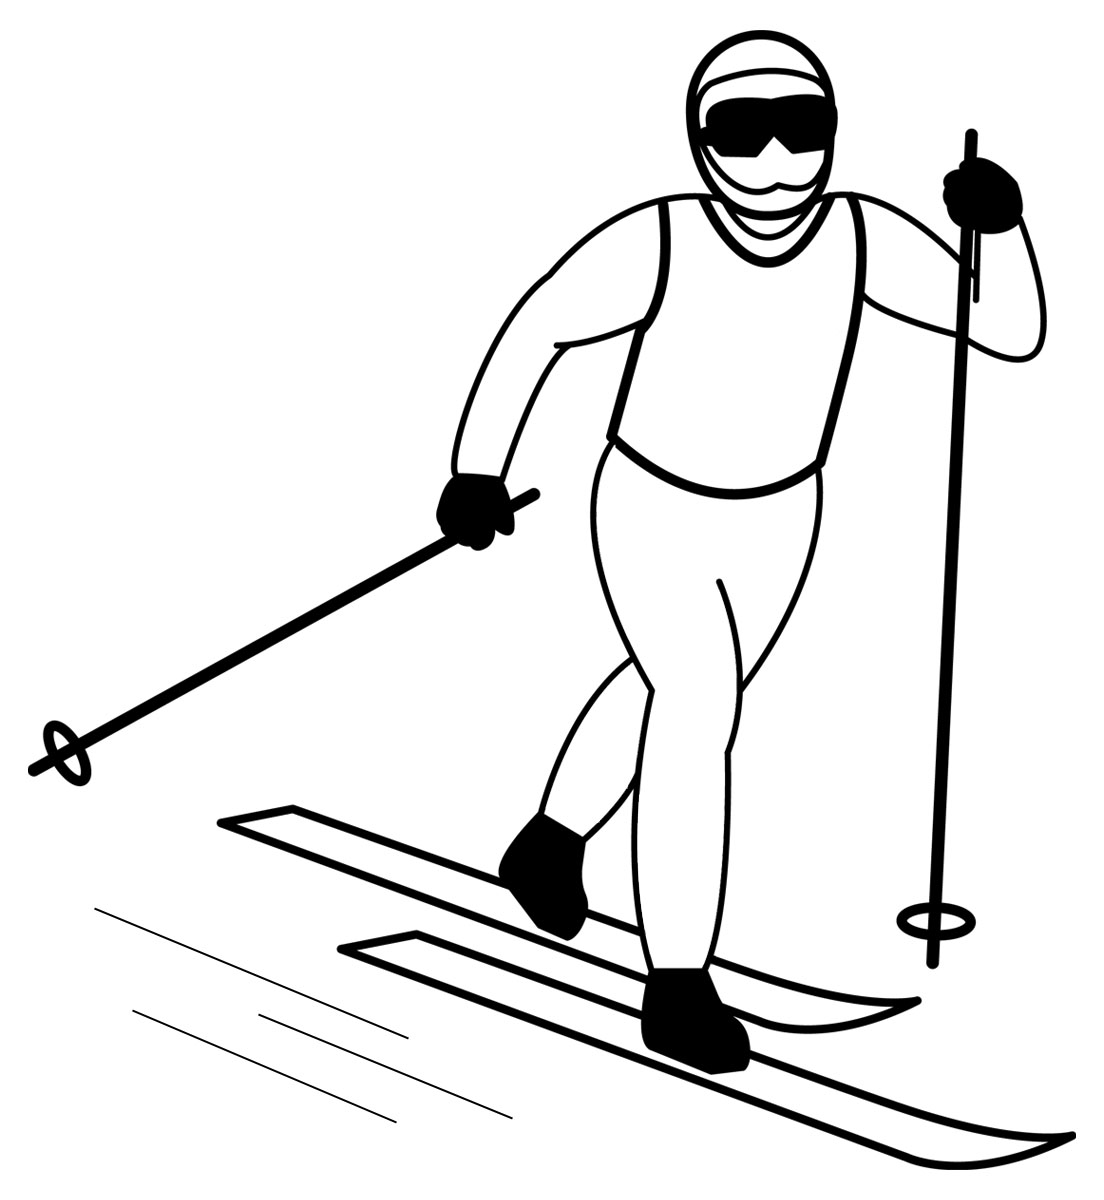 Crossed Skis Drawing Ski Clipart